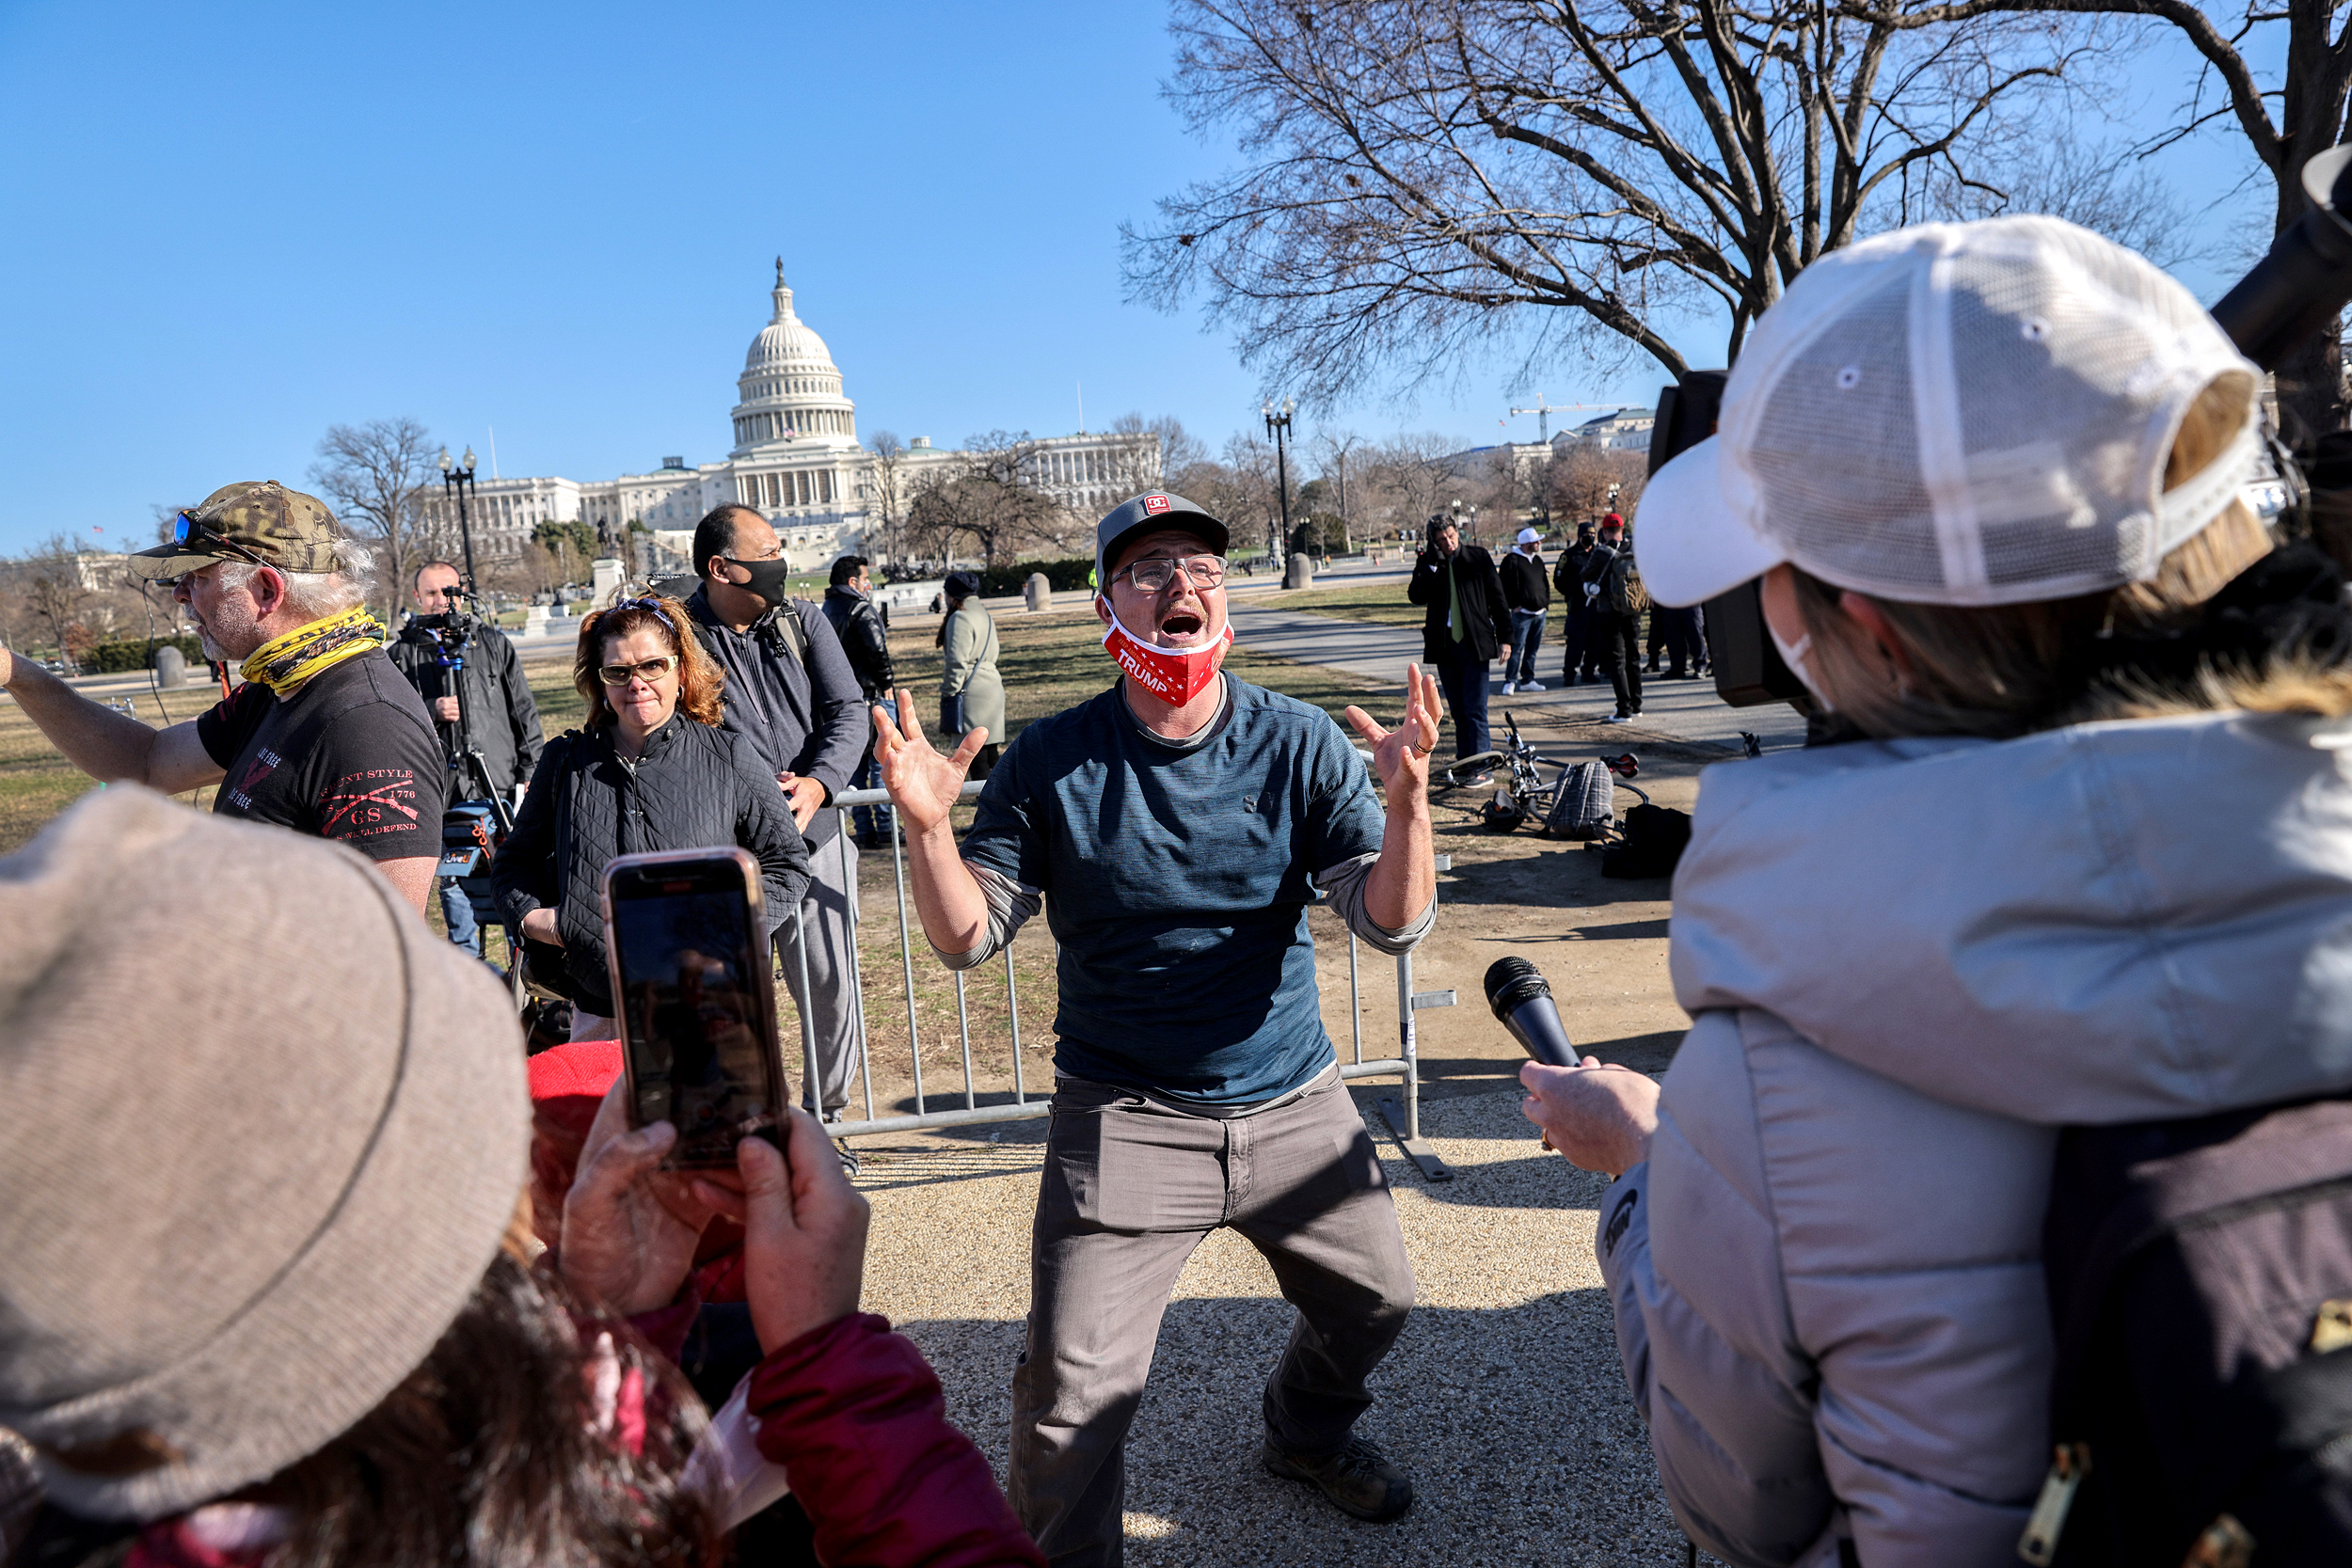 Dejected Trump supporters leave Washington, create new theories for Capitol  violence